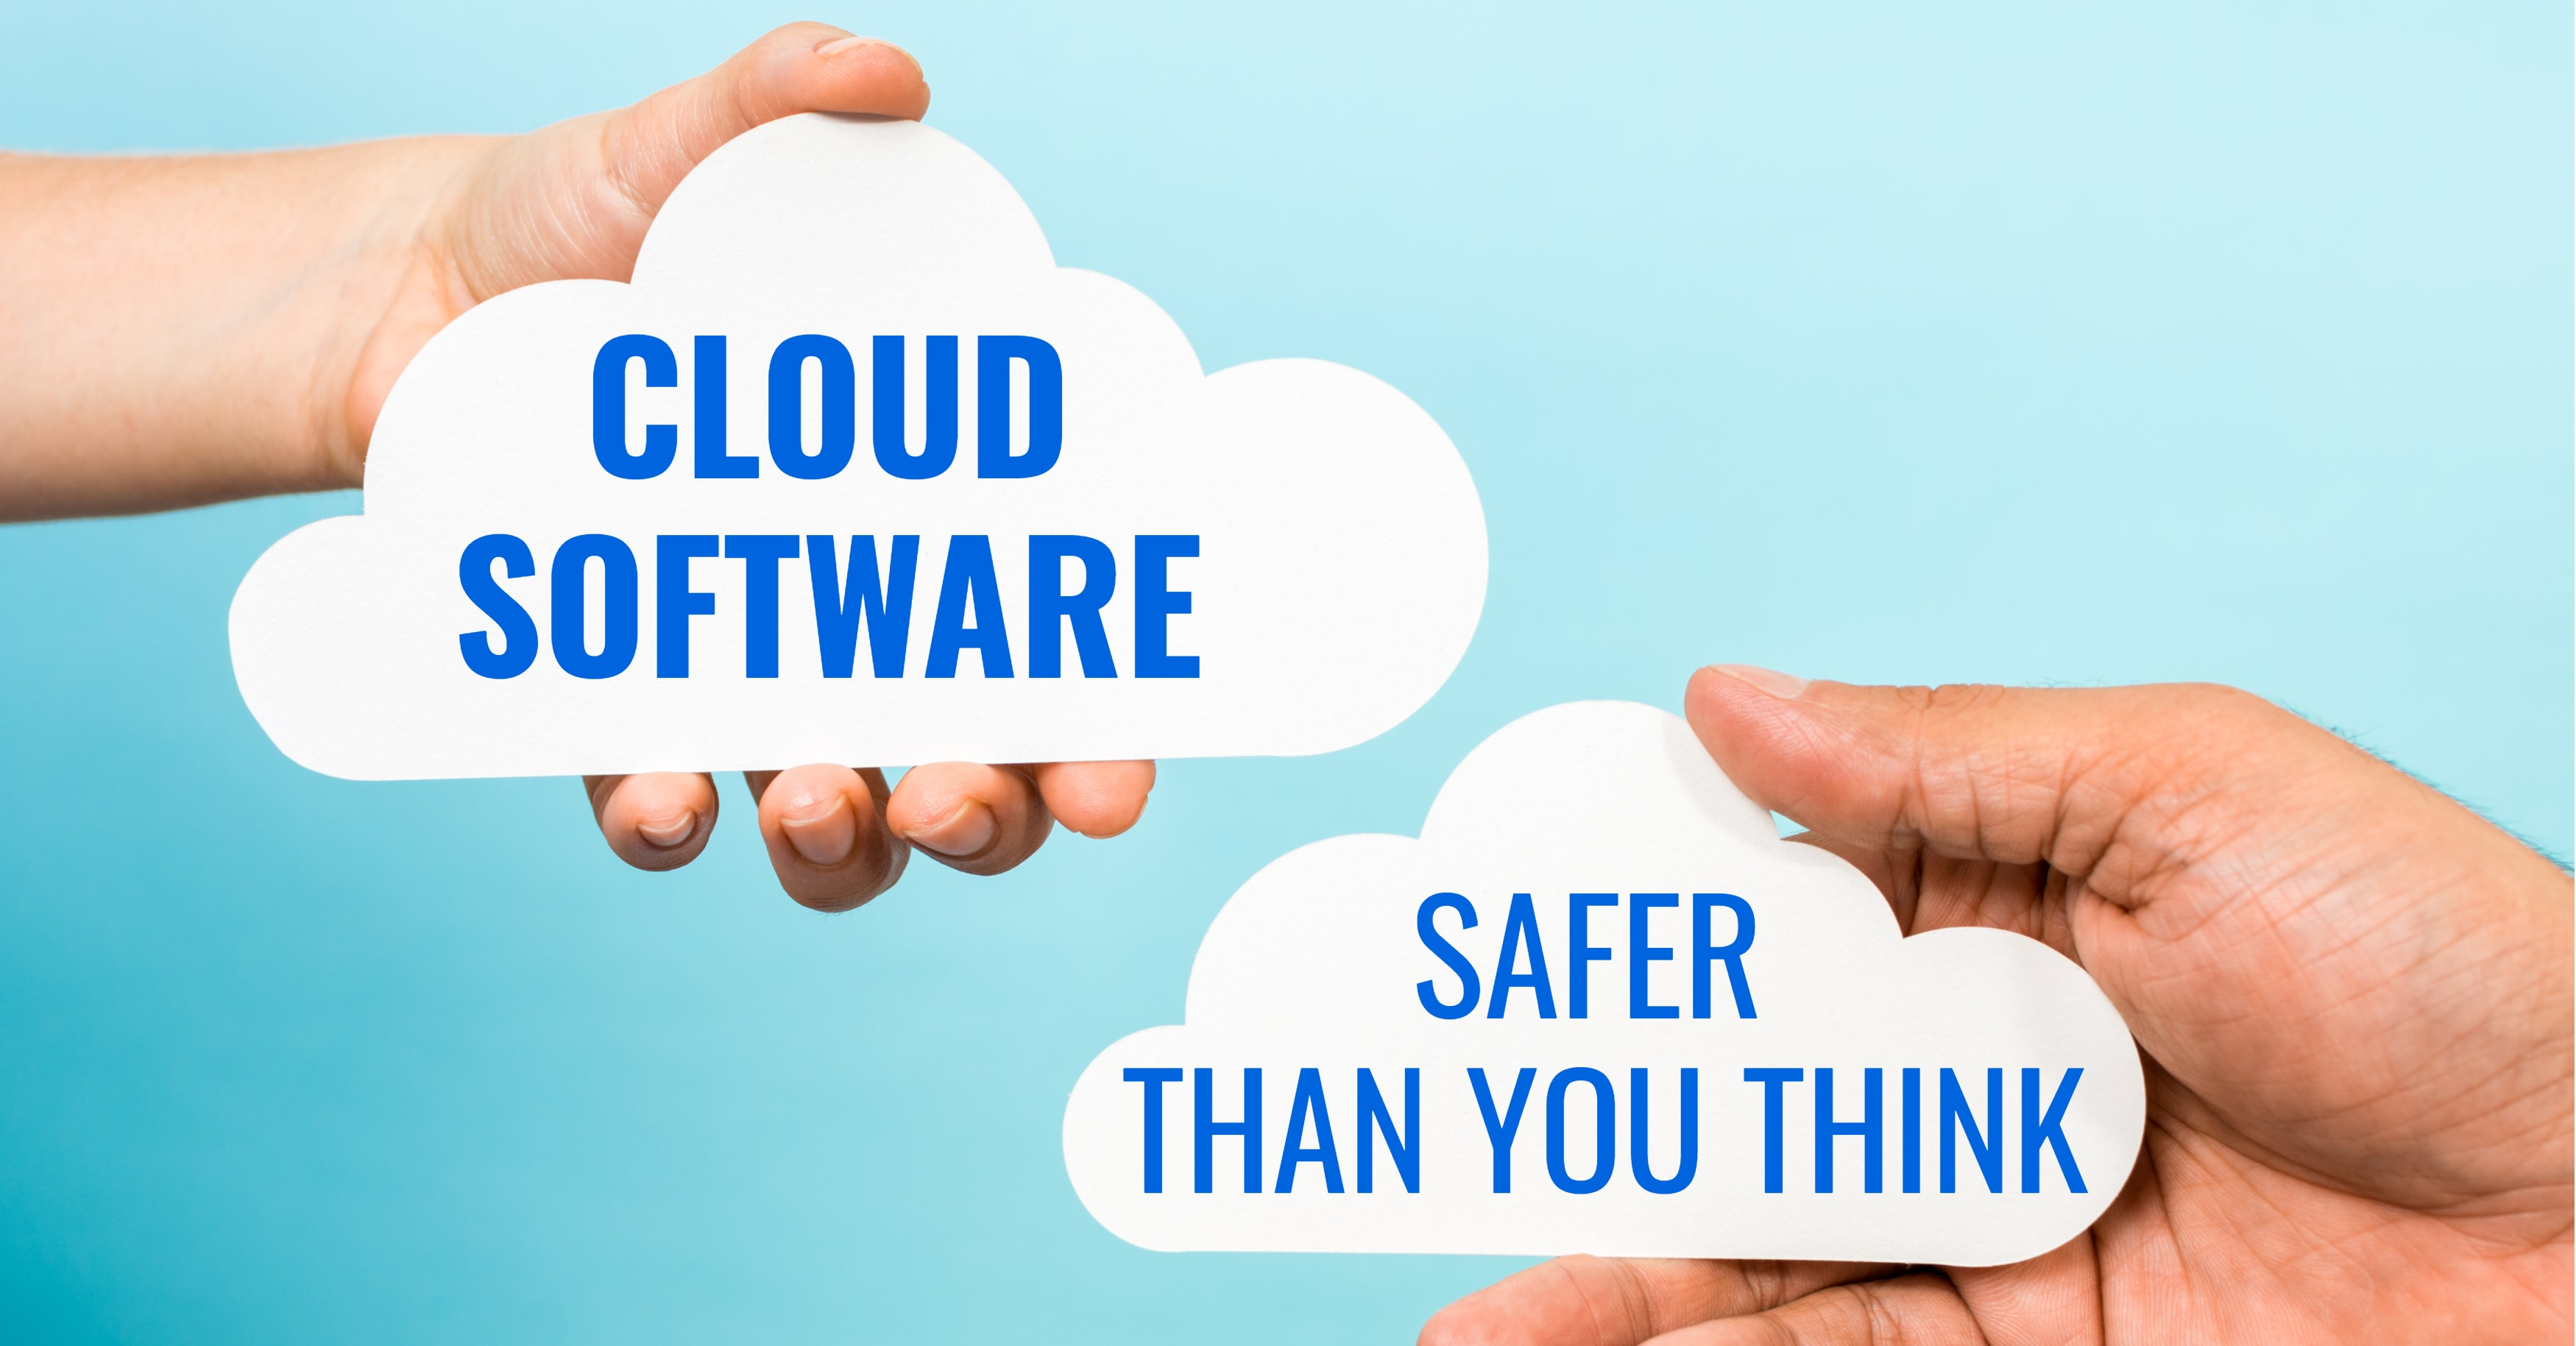 Cloud Software is Safer Than You Think